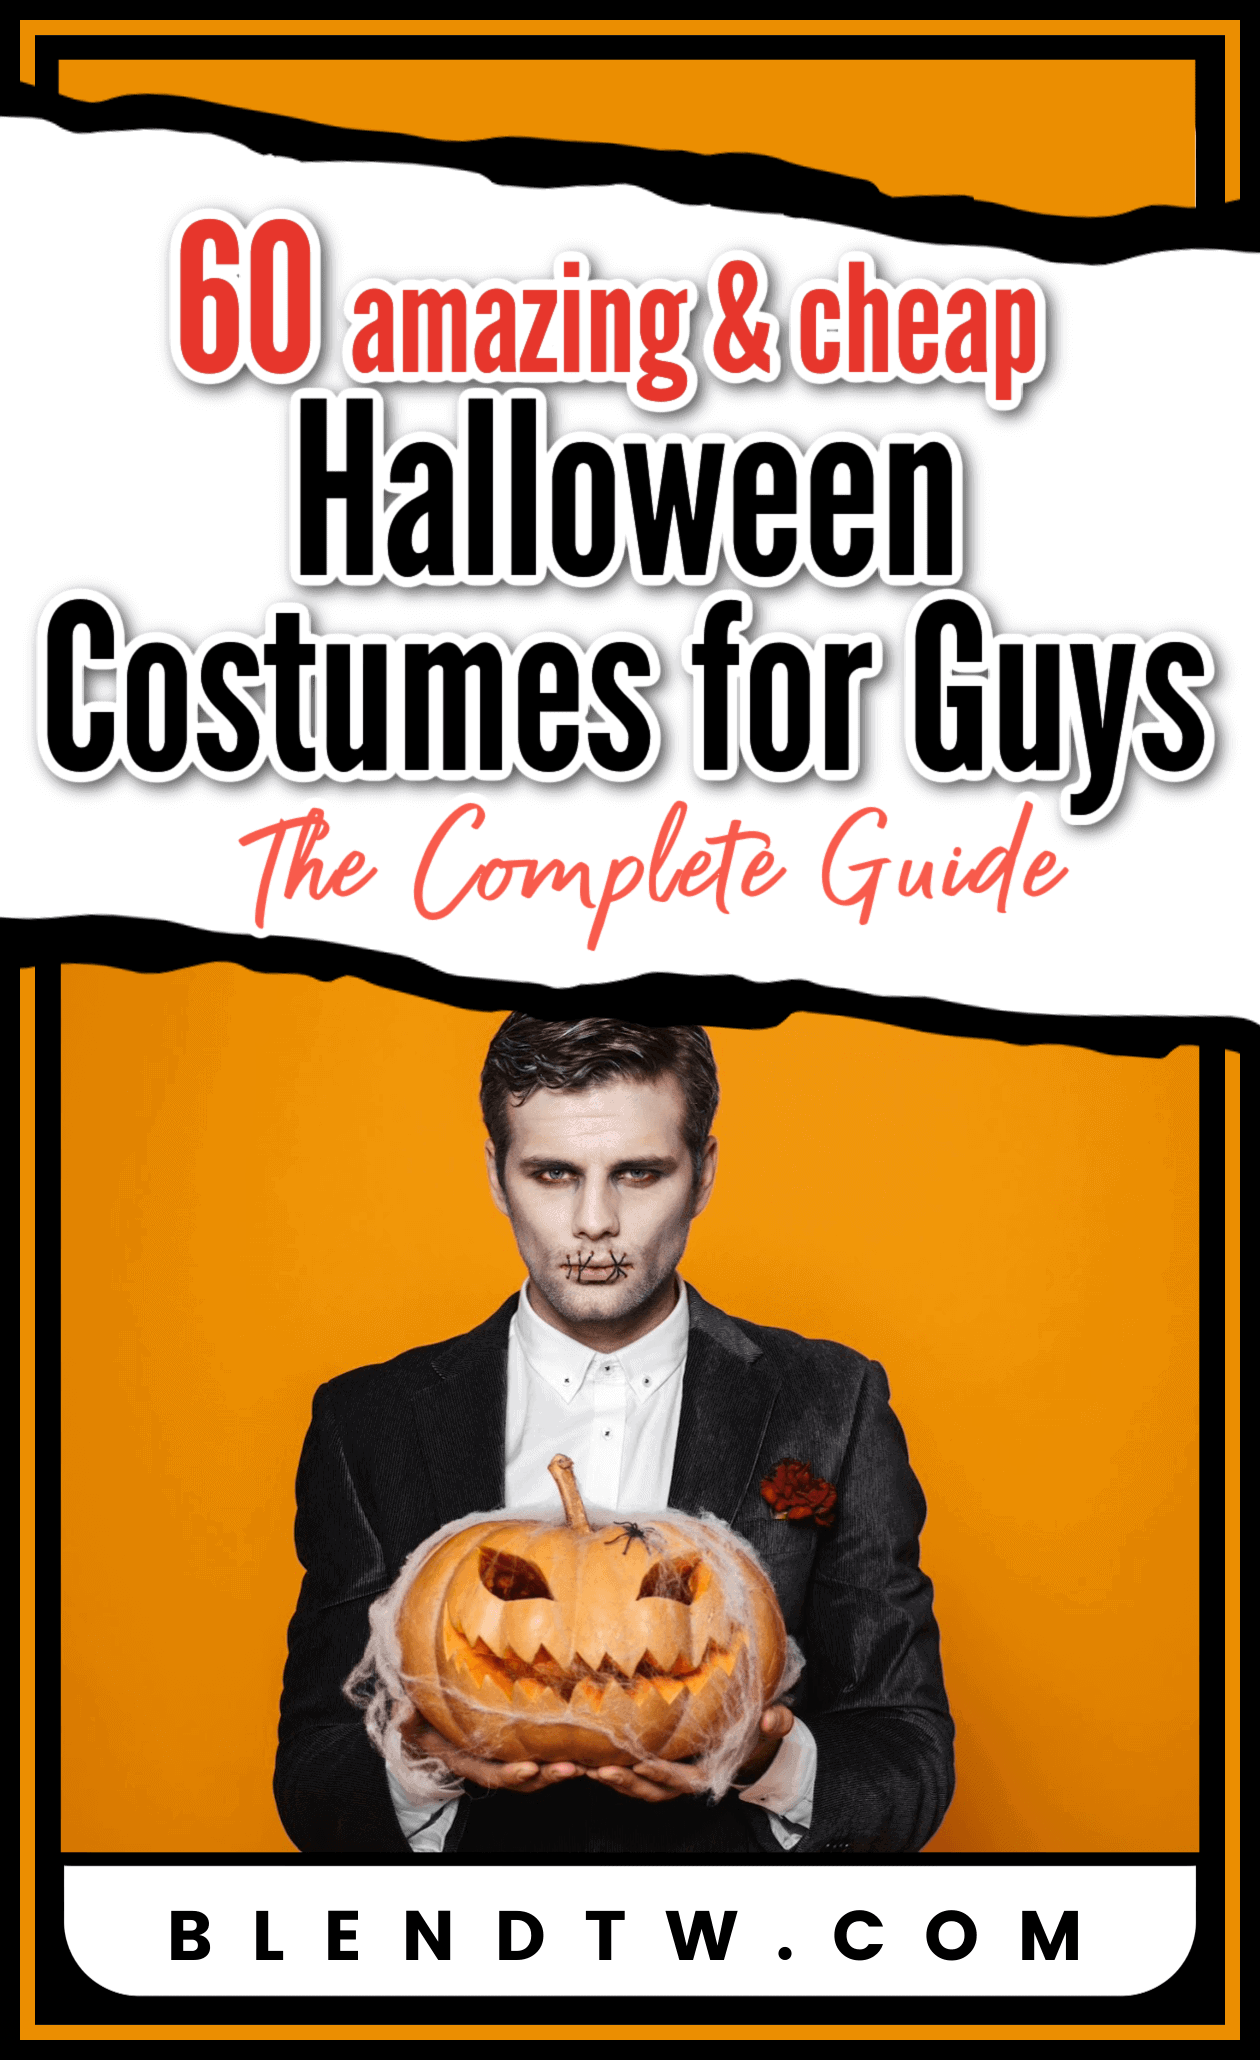 Pin for 60 amazing and cheep Halloween costumes for guys.